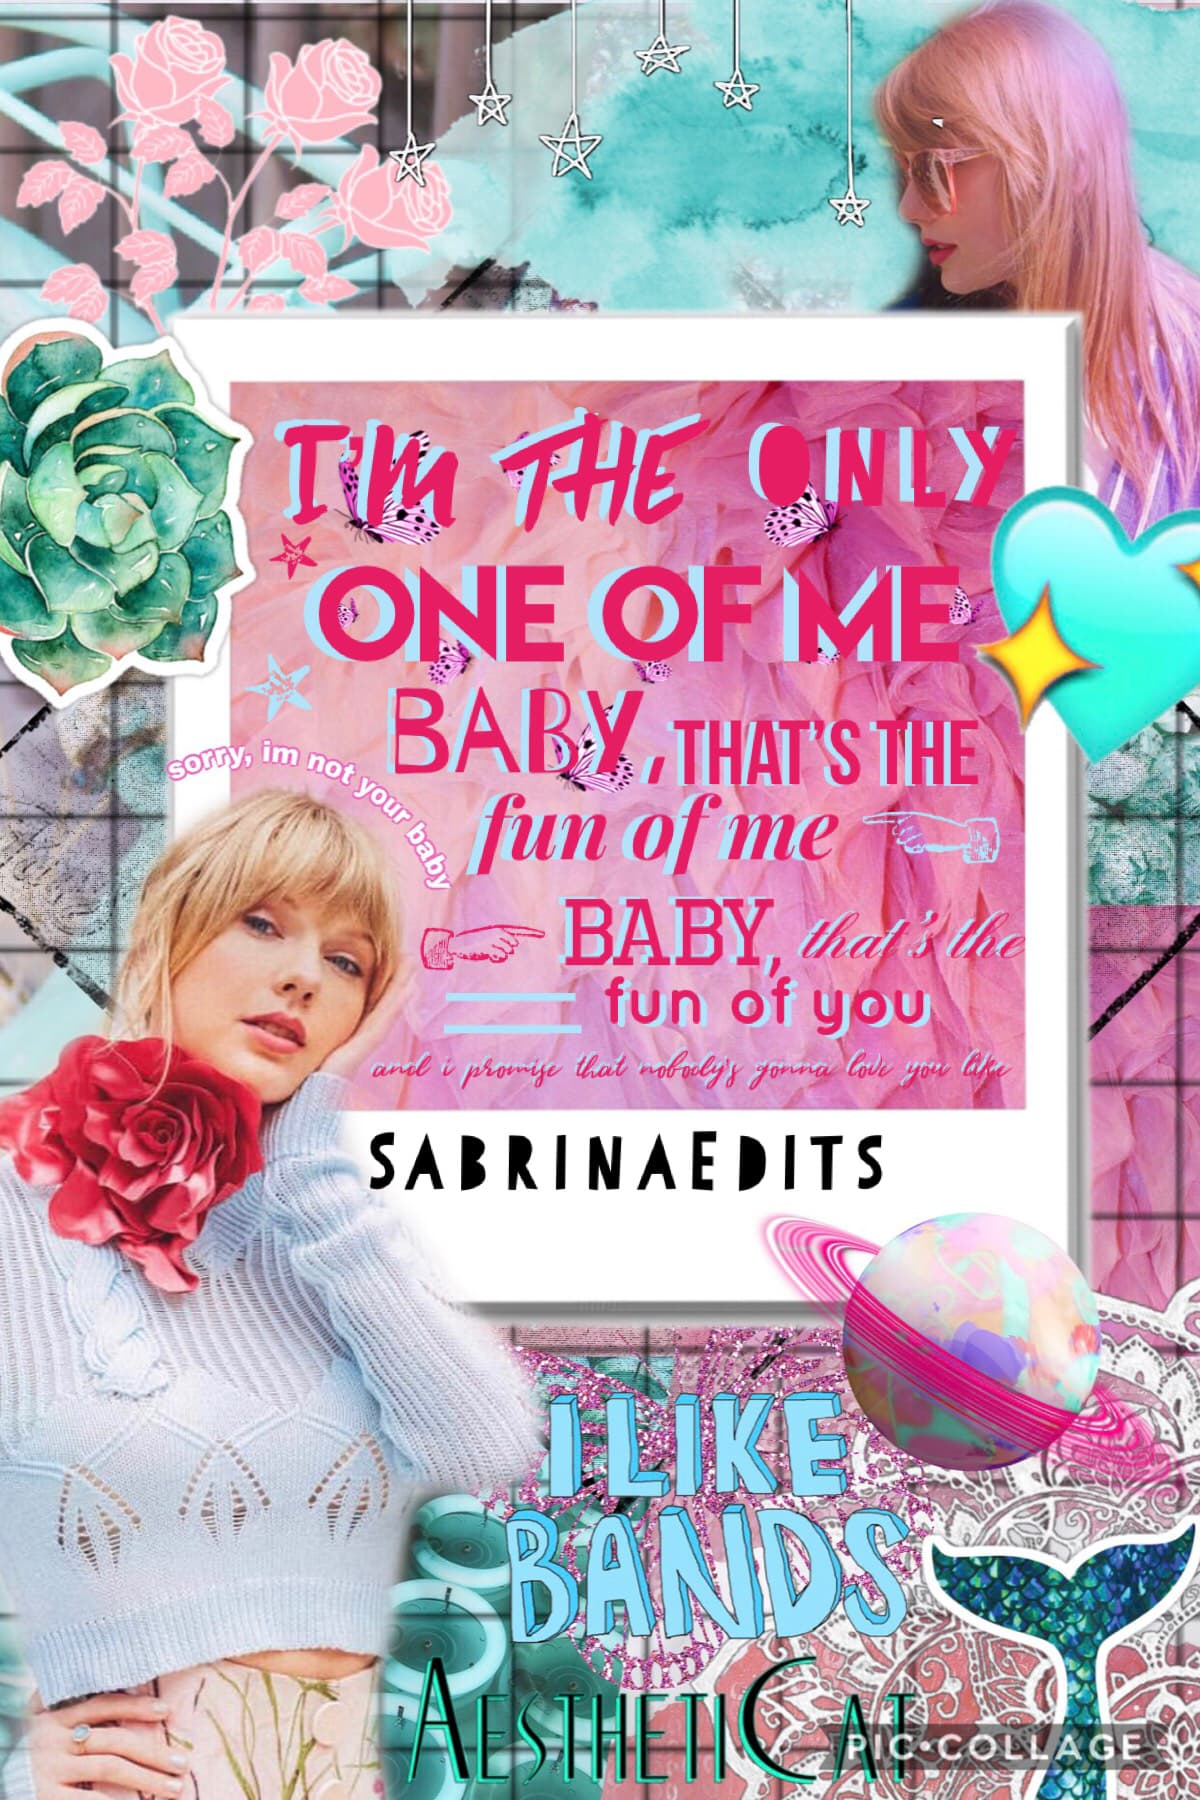 🌈TaP🌈 Who else LOVES this song🎤? I know your're all so board of Taylor Swift edits, sorry 😐. QOTD: Favorite Taylor Swift song? AOTD: Wildest Dreams, I don't want to live forever, Fifteen, Our Song, Style, and i have like 20 more 😂😂😂